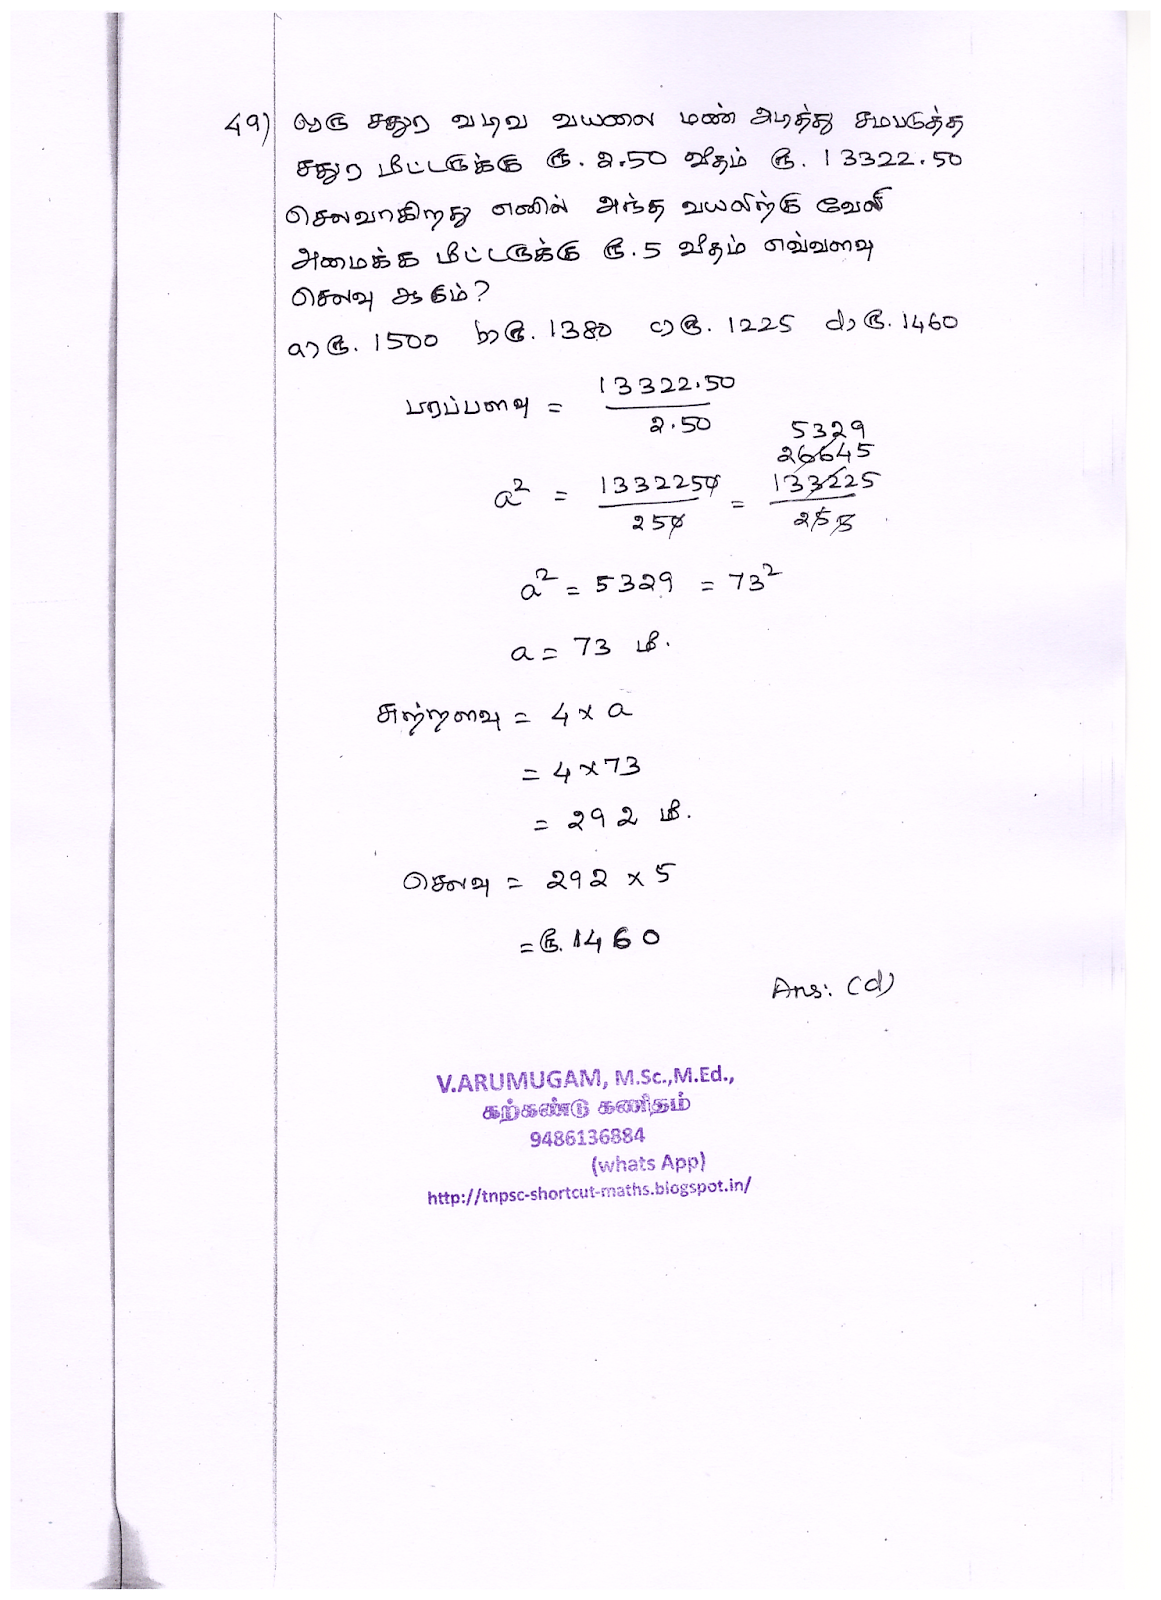 TNPSC – 2019 - Posts included in Combined Civil Services - I Examination (Group-I) - Preliminary Examination EXAM - EXAM DATE: 03.03.2019